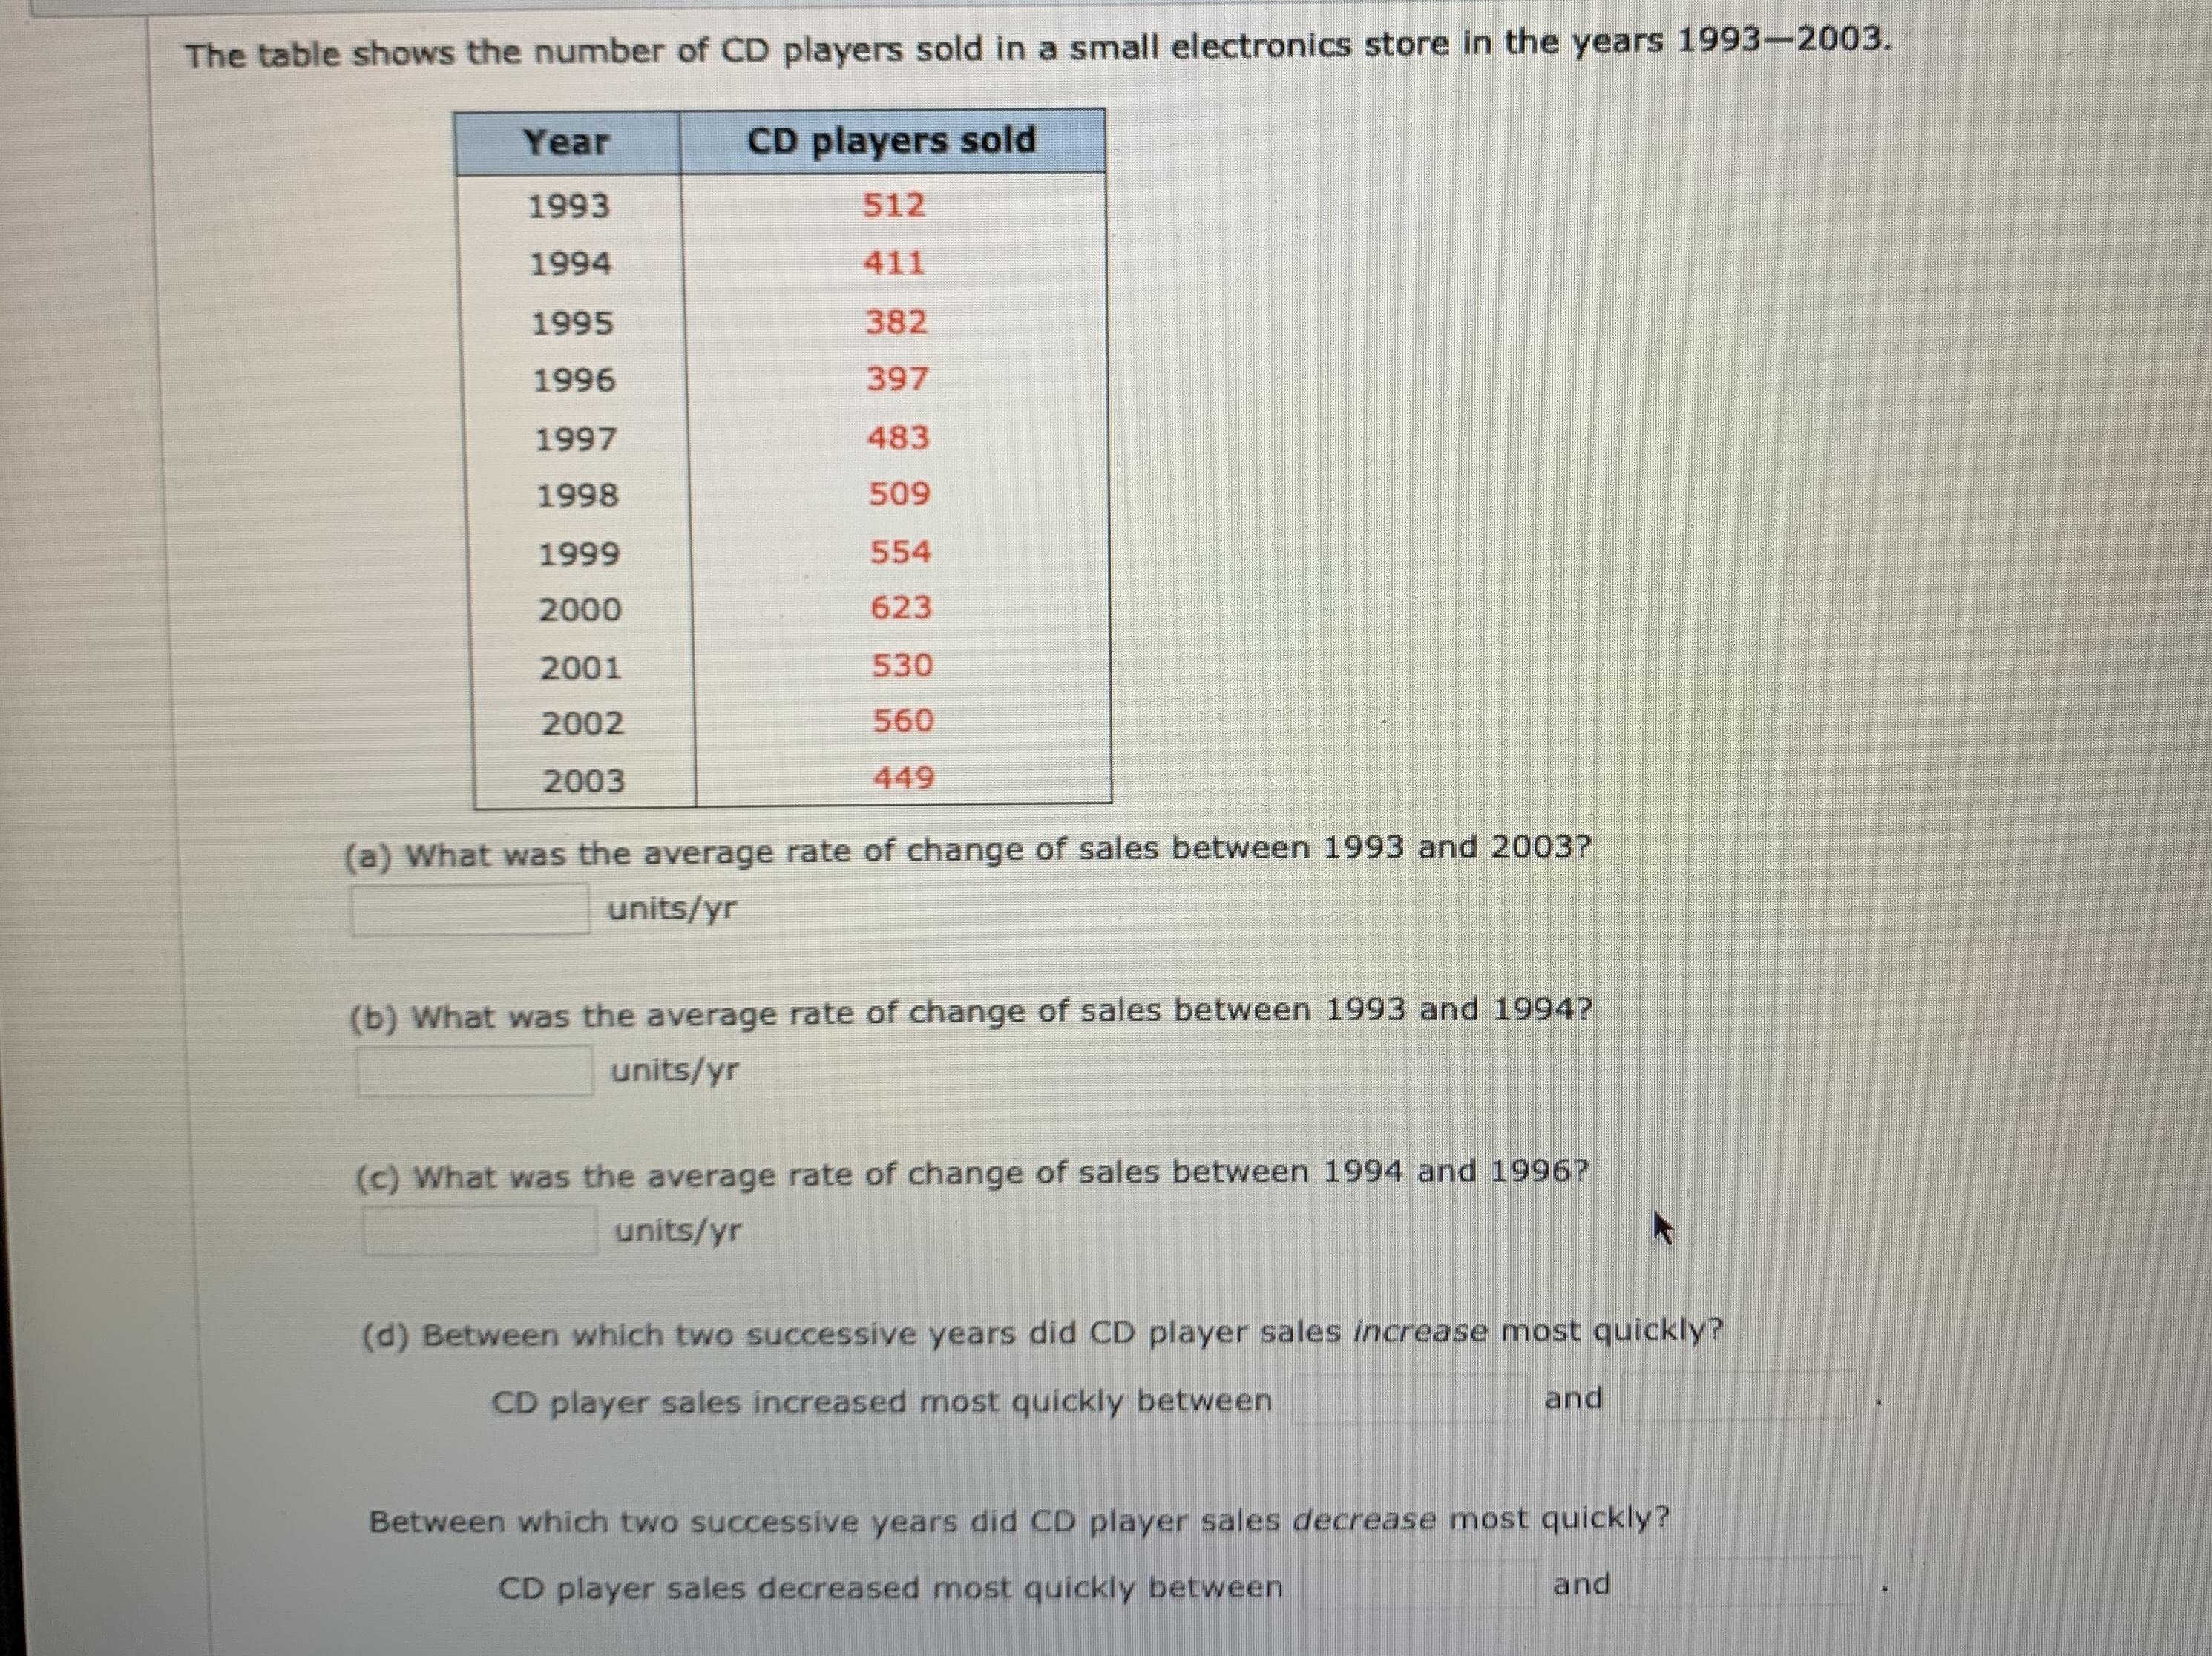 The table shows the number of CD players sold in a small electronics store in the years 1993-2003. CD players sold Year 512 1993 411 1994 382 1995 397 1996 483 1997 509 1998 1999 554 623 2000 530 2001 560 2002 449 2003 (a) What was the average rate of change of sales between 1993 and 2003? units/yr (b) What was the average rate of change of sales between 1993 and 1994? units/yr (c) What was the average rate of change of sales between 1994 and 19967 units/yr (d) Between which two successive years did CD player sales increase most quickly? and CD player sales increased most quickly between Between which two successive years did CD player sales decrease most quickly? CD player sales decreased most quickly between and